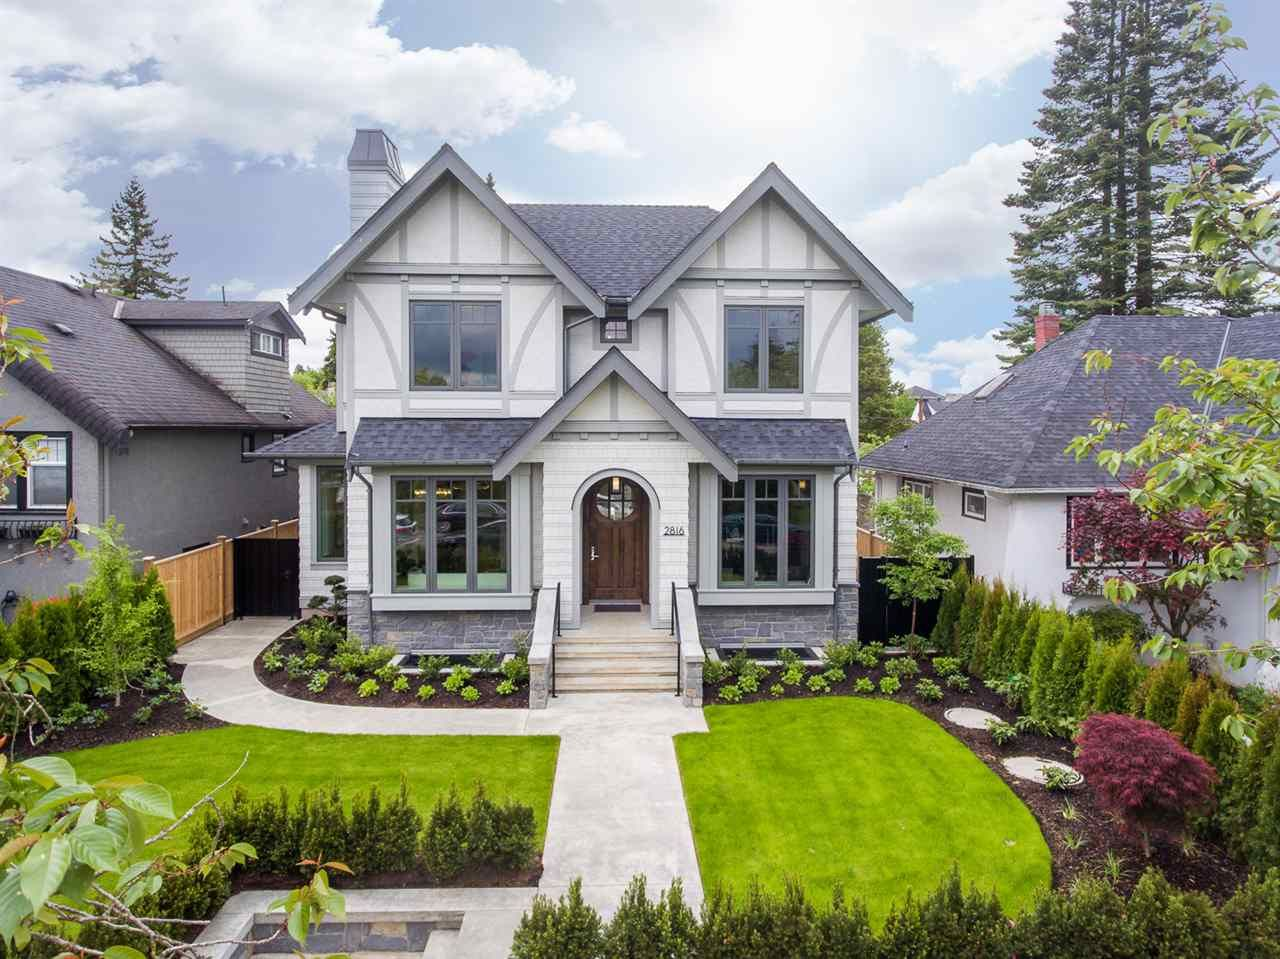 """Photo 27: Photos: 2816 W 30TH Avenue in Vancouver: MacKenzie Heights House for sale in """"MACKENZIE HEIGHTS"""" (Vancouver West)  : MLS®# R2456722"""